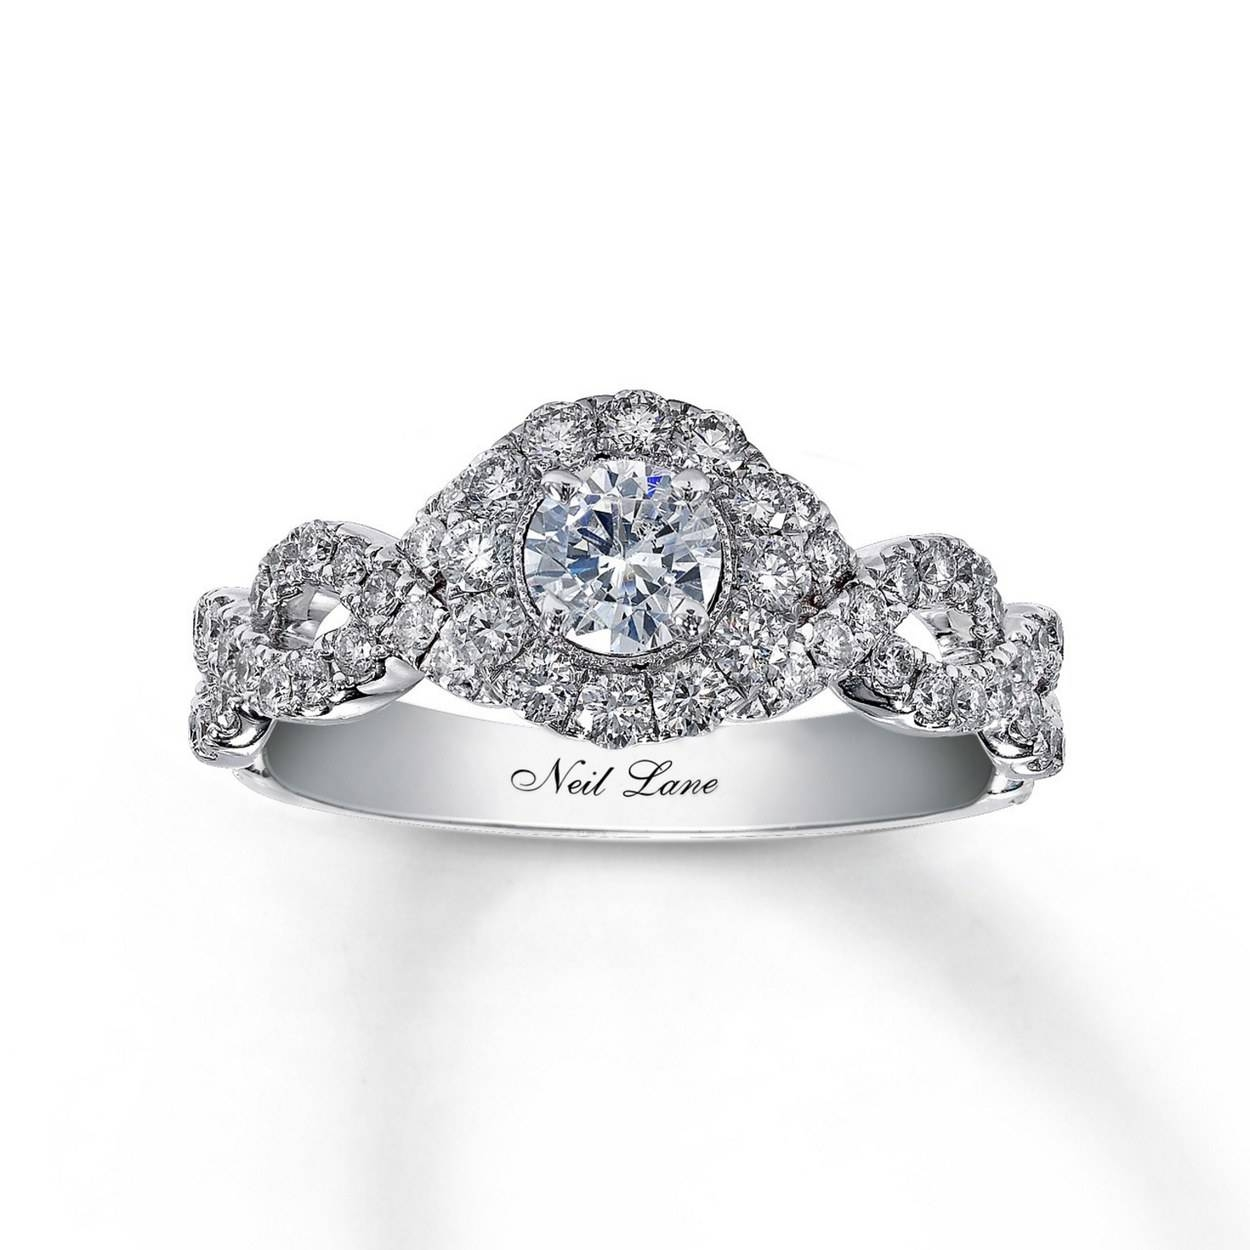 62 Diamond Engagement Rings Under $5,000 | Glamour Regarding Engagement Band Rings (View 3 of 15)